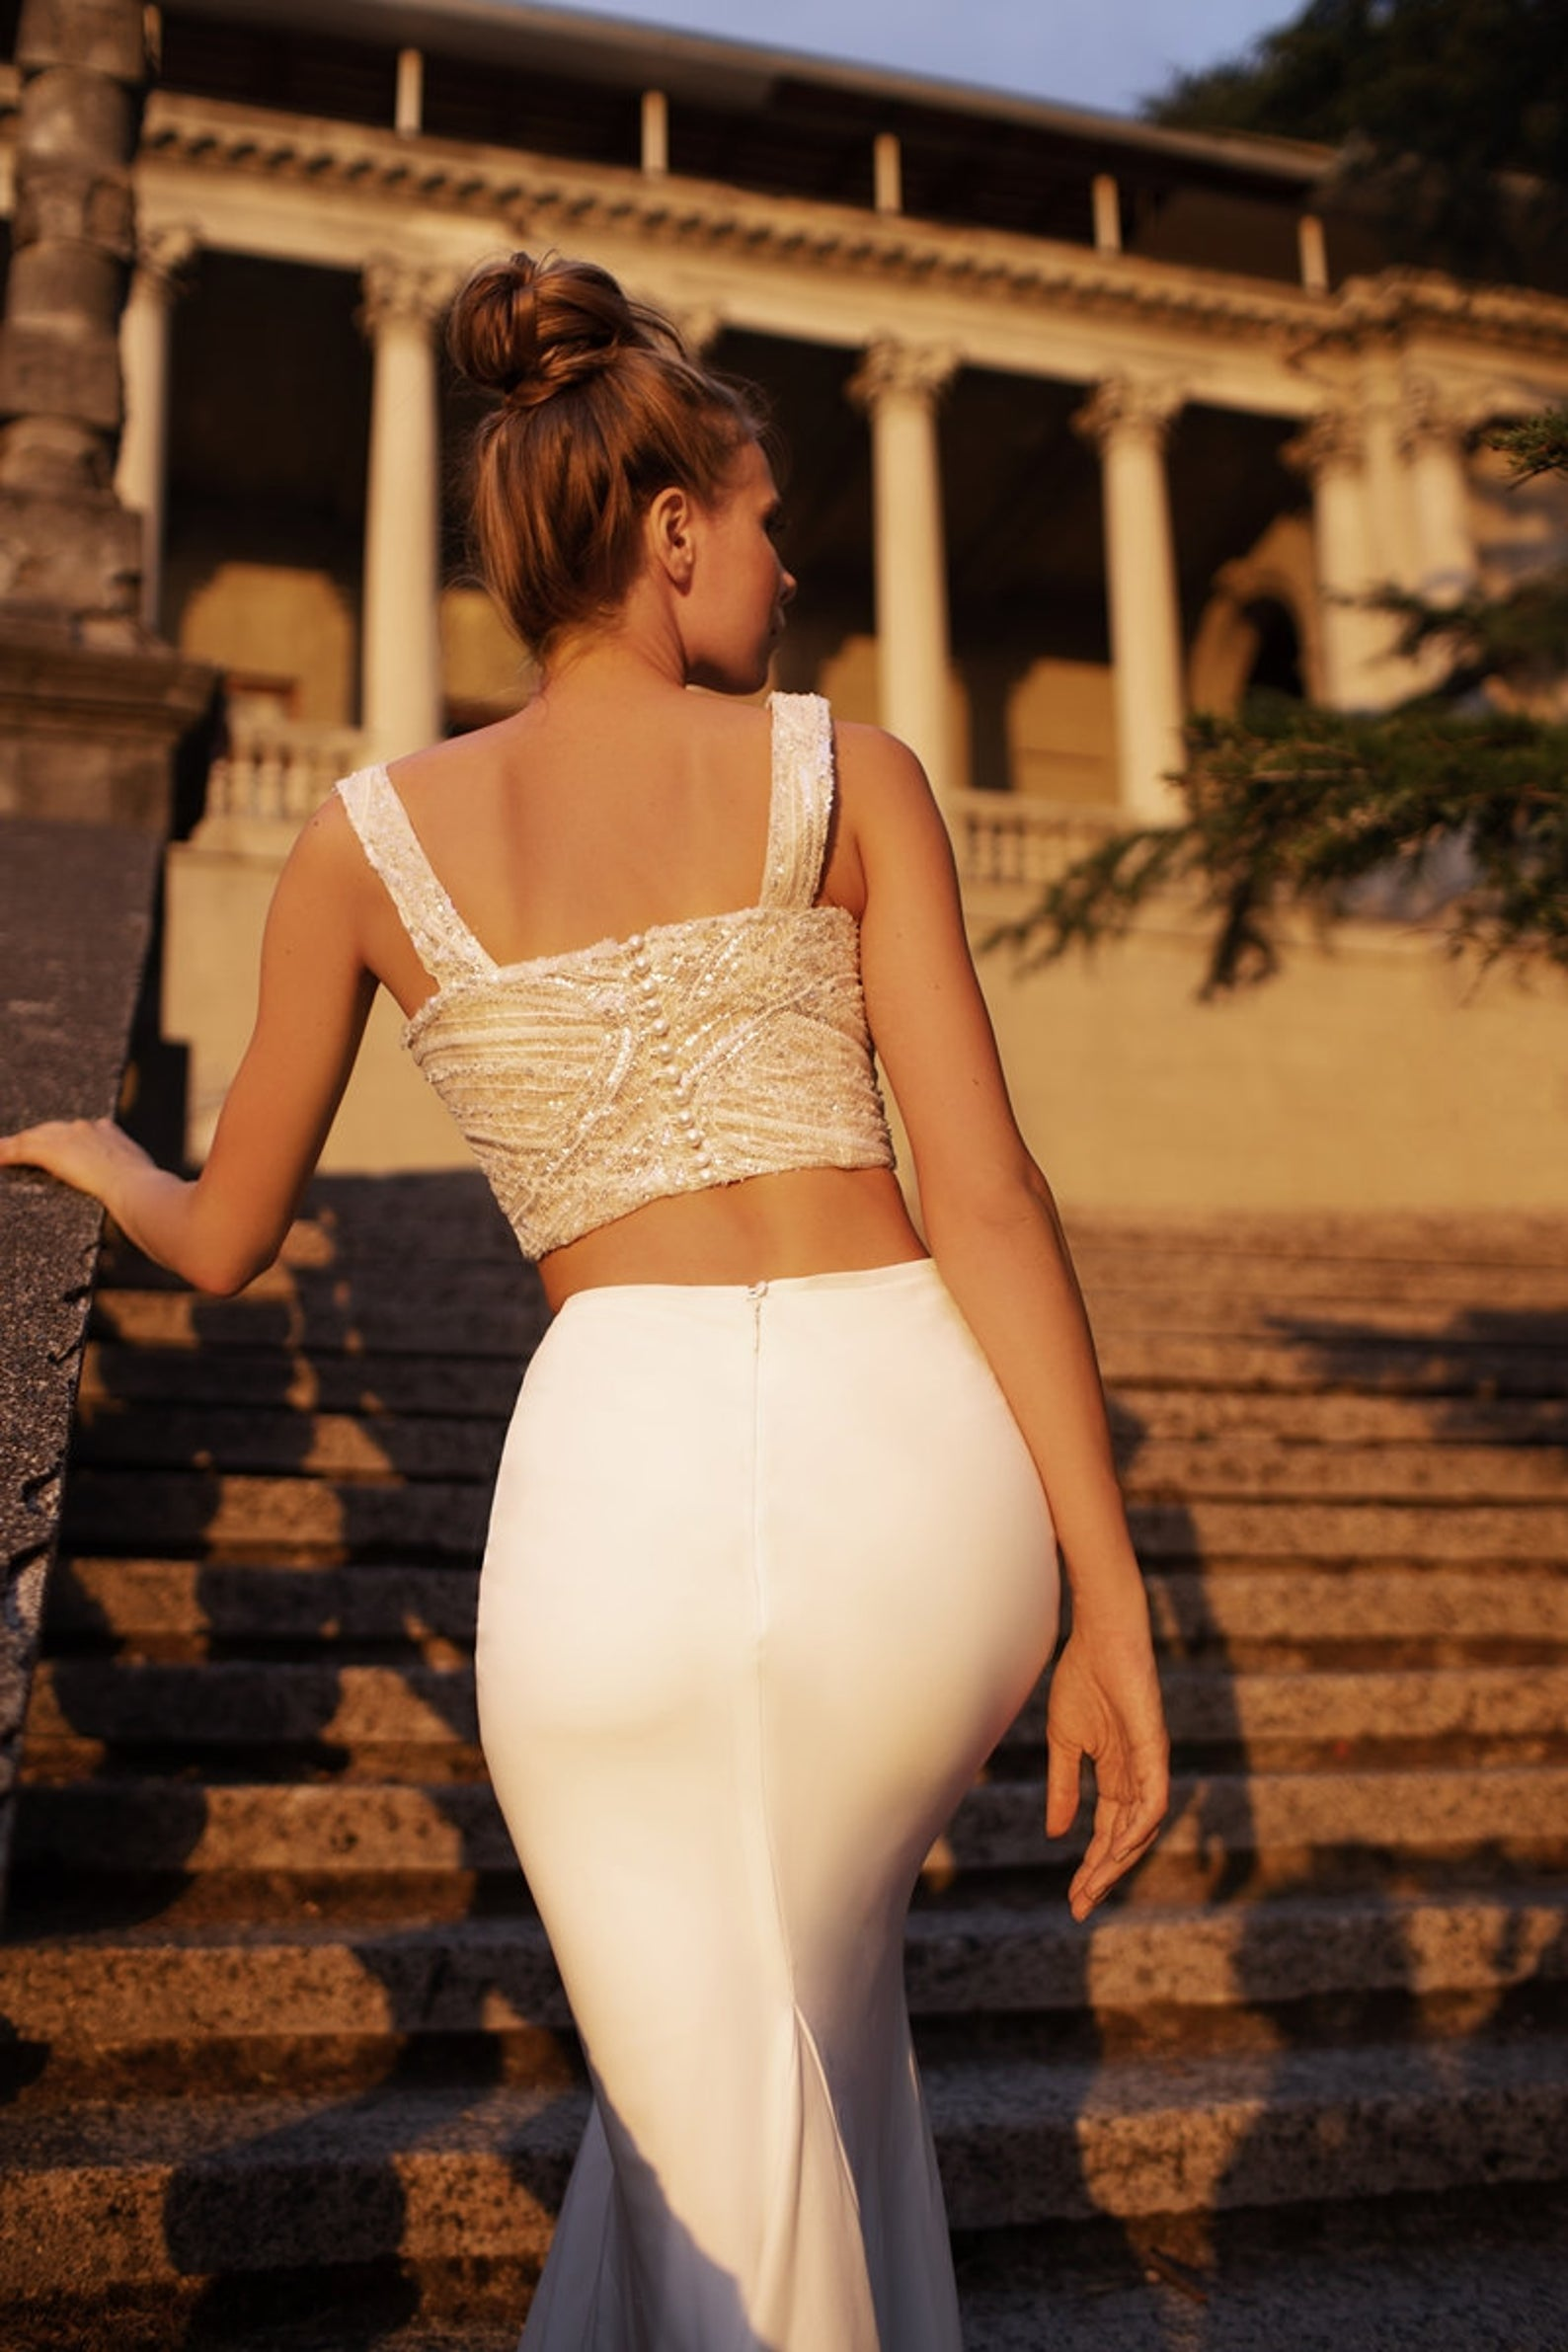 fitted bridal skirt and top